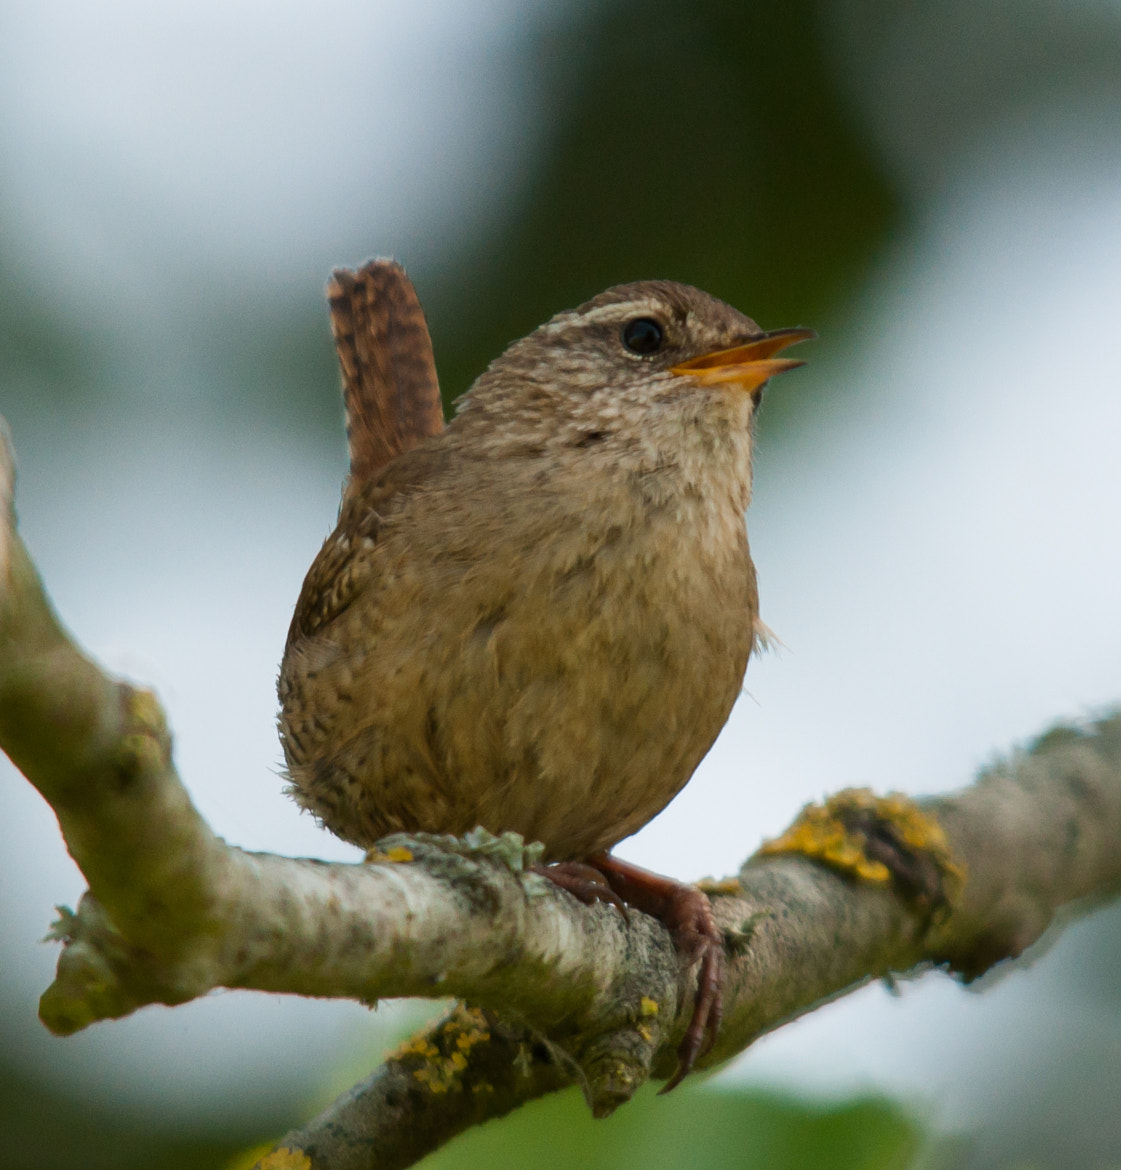 Photograph Wren by Phil Scarlett on 500px